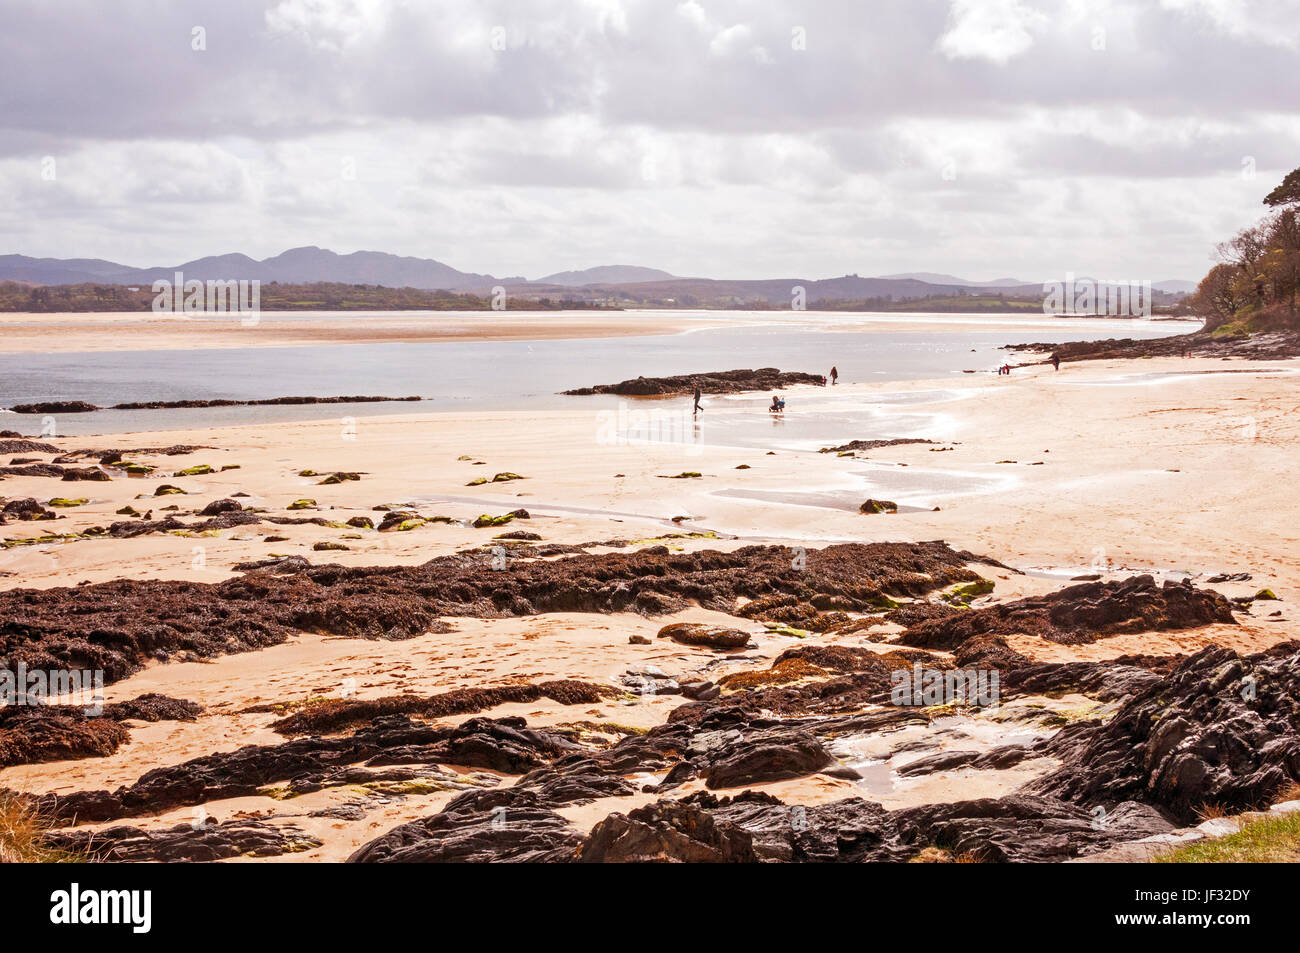 Beach and views at Ards Forest Park, County Donegal, Ireland - Stock Image